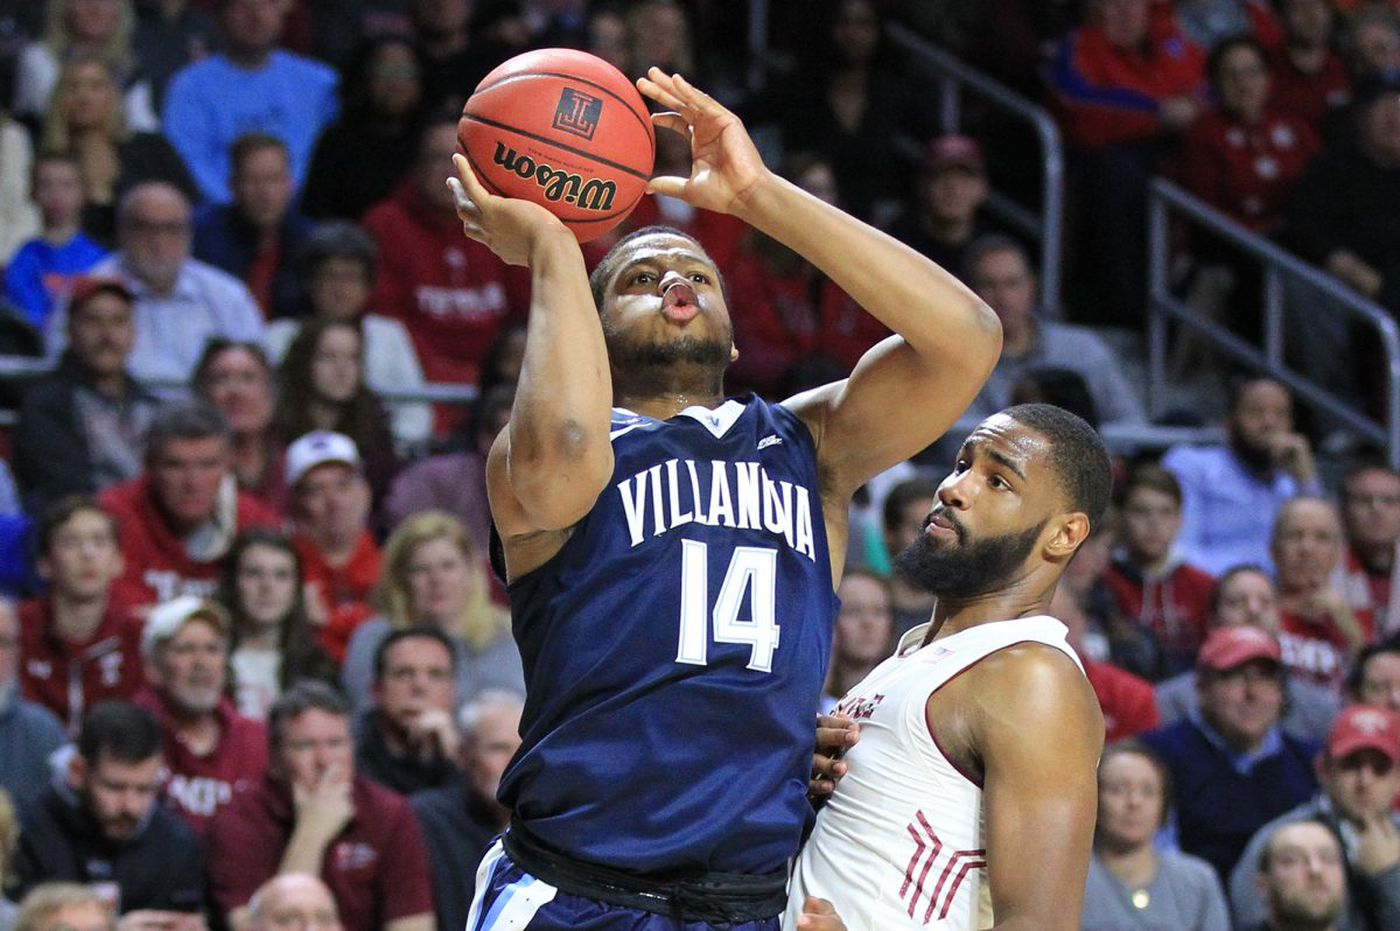 Omari Spellman's shooting for Villanova can't be ignored